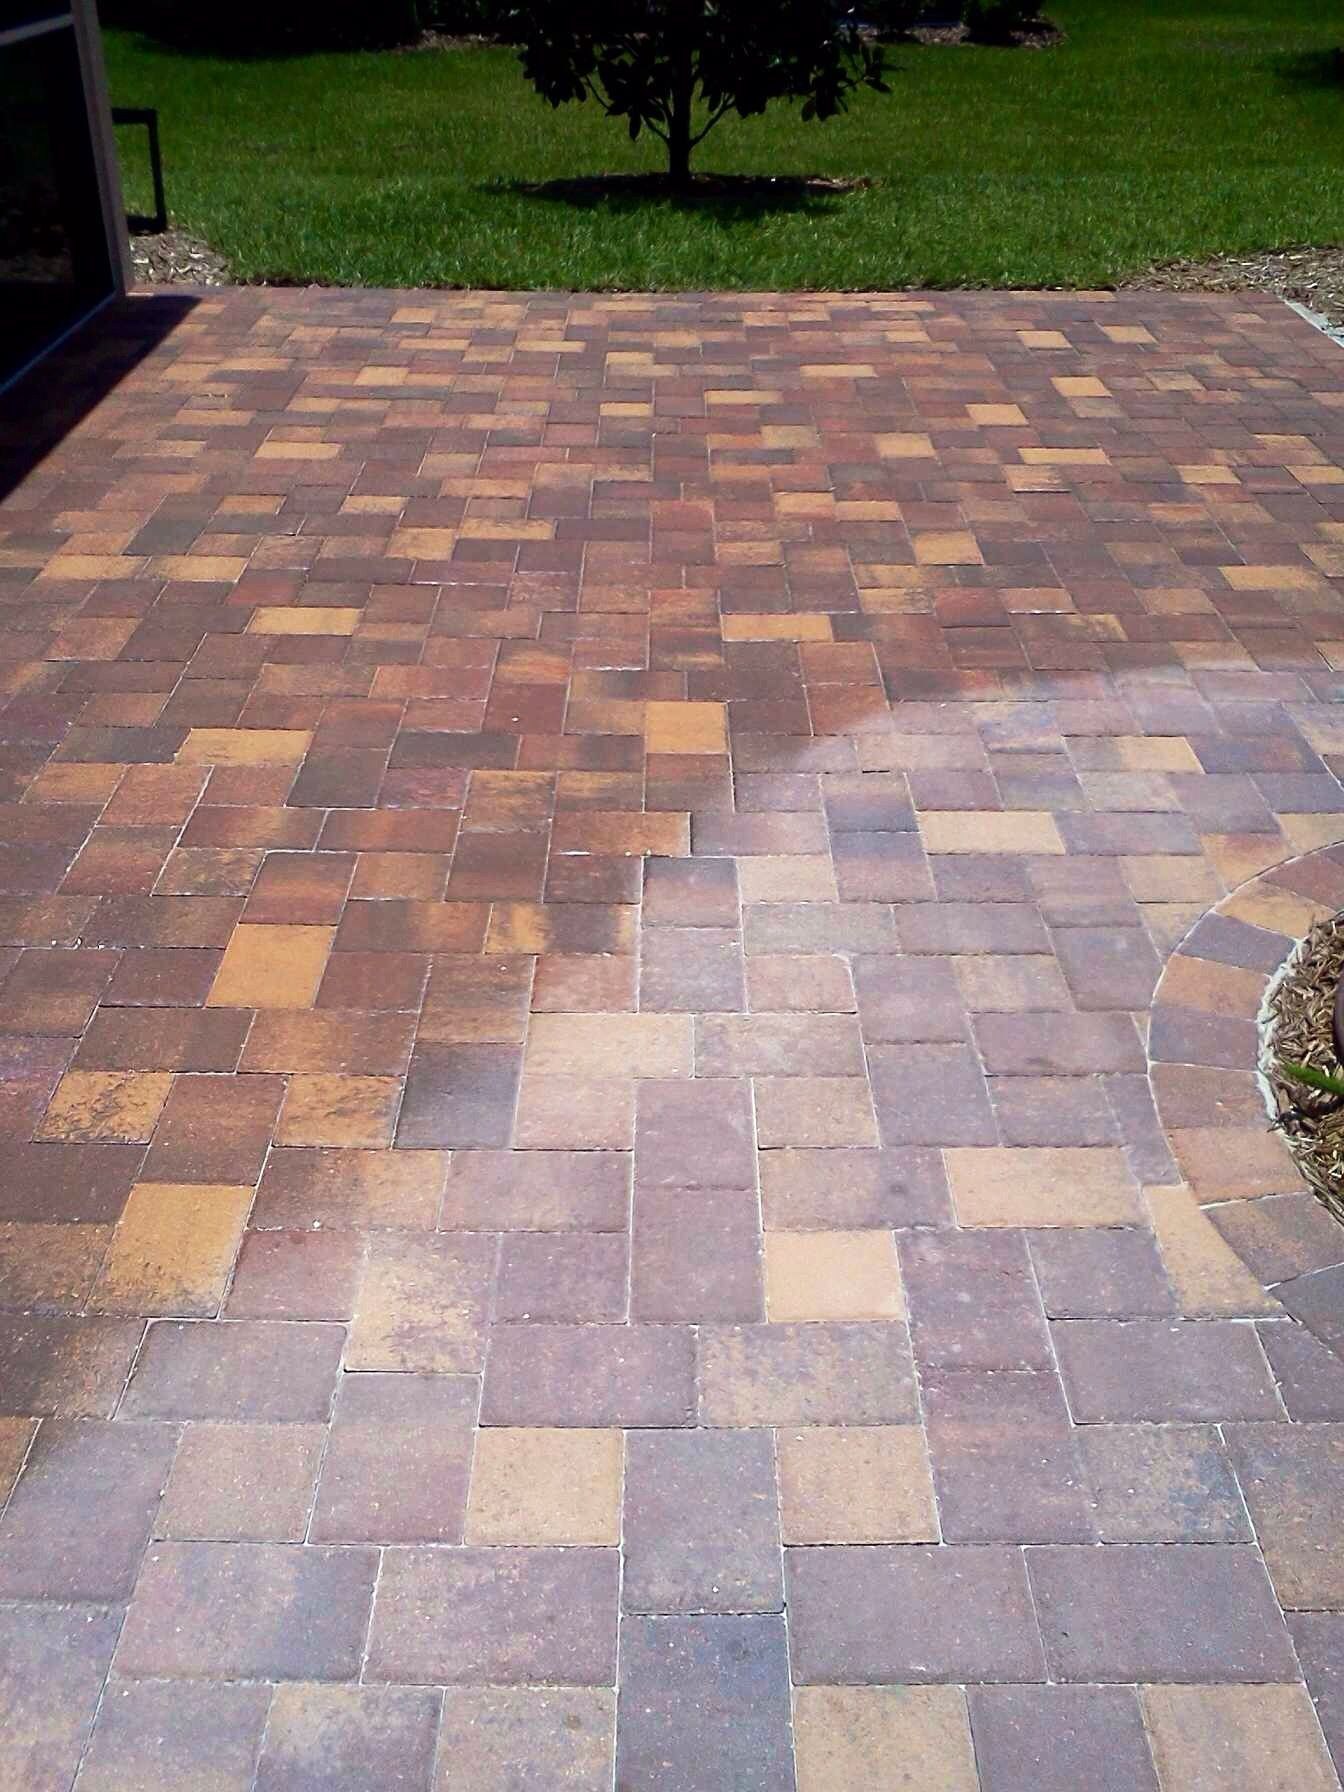 Paver Clean And Seal Brick Paving Systems 813 949 1110